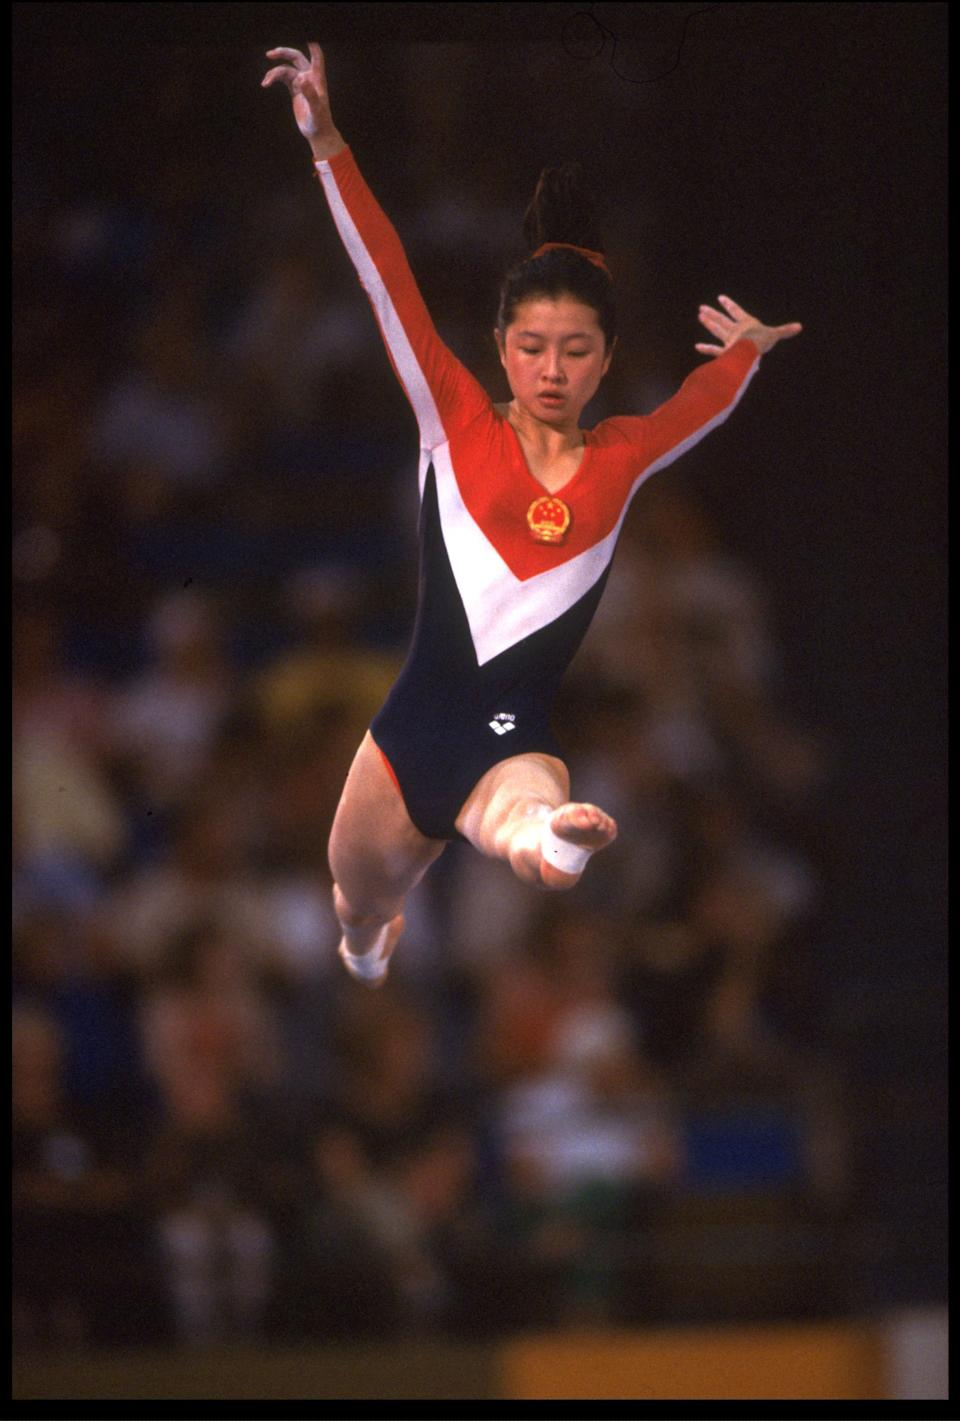 5 AUG 1984: ZHOU PING OF CHINA COMPETES ON THE BALANCE BEAM DURING THE GYMNASTICS AT THE 1984 LOS ANGELES OLYMPICS.